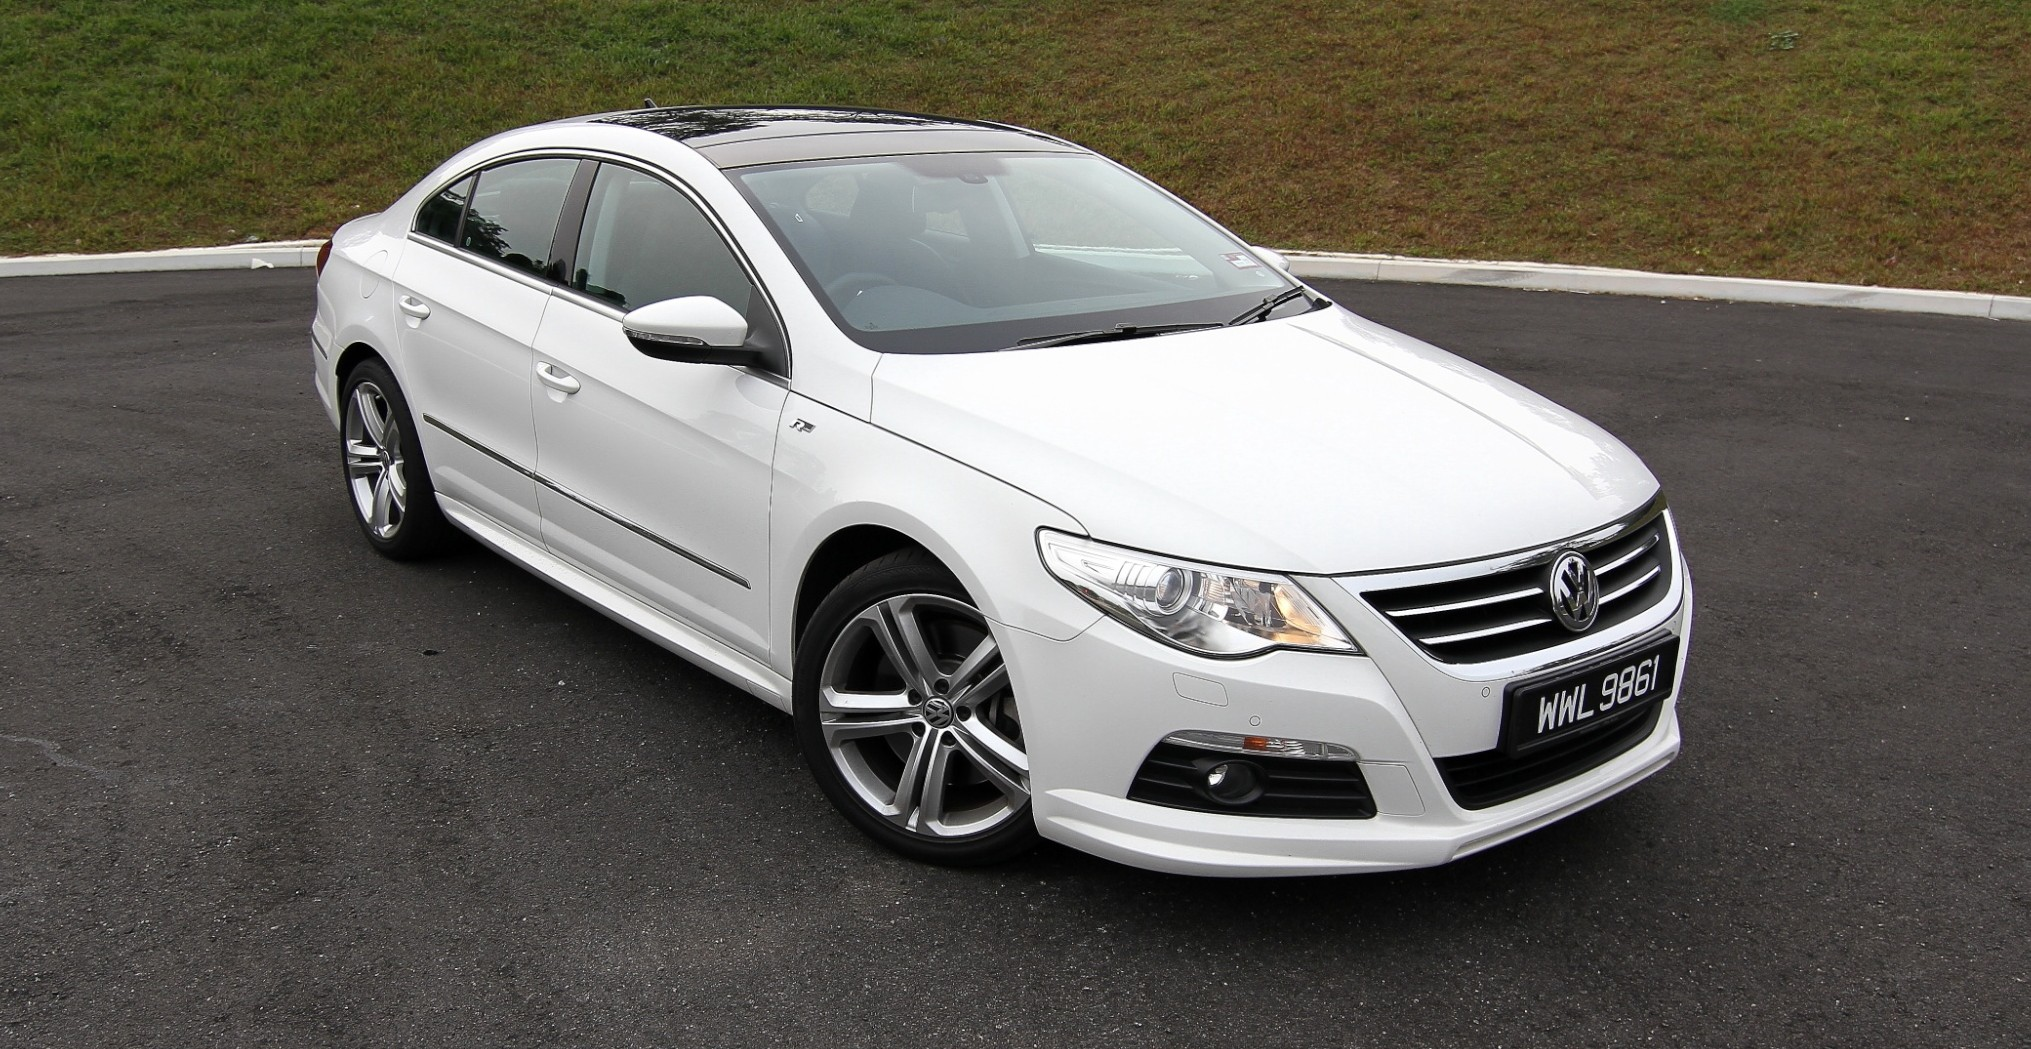 Volkswagen Passat CC 3.6 2012 photo - 10